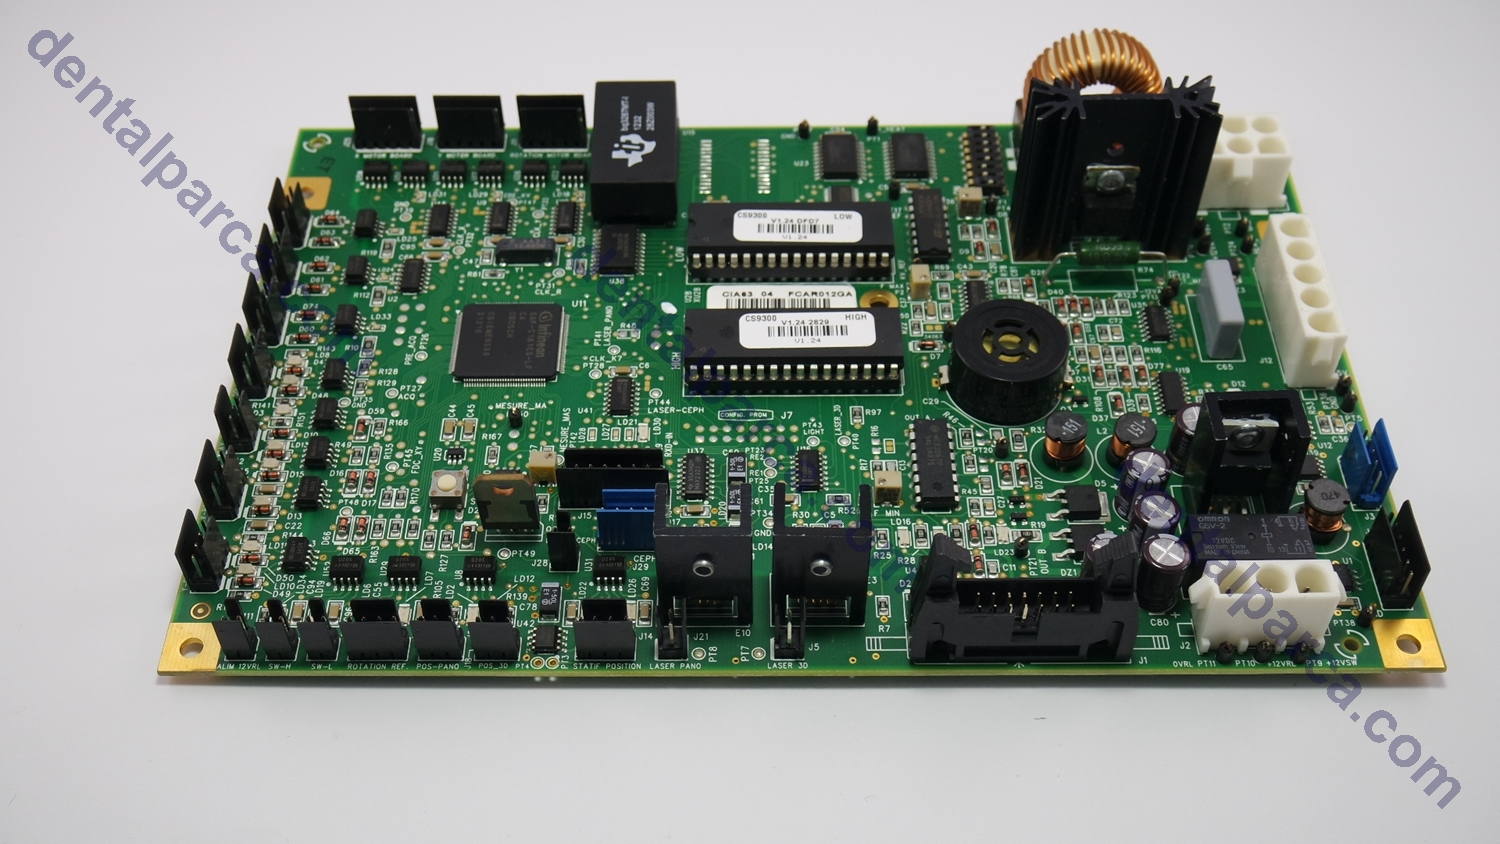 CJ732 MİCROPROCESSOR BOARD (FOR CS 9300) resmi